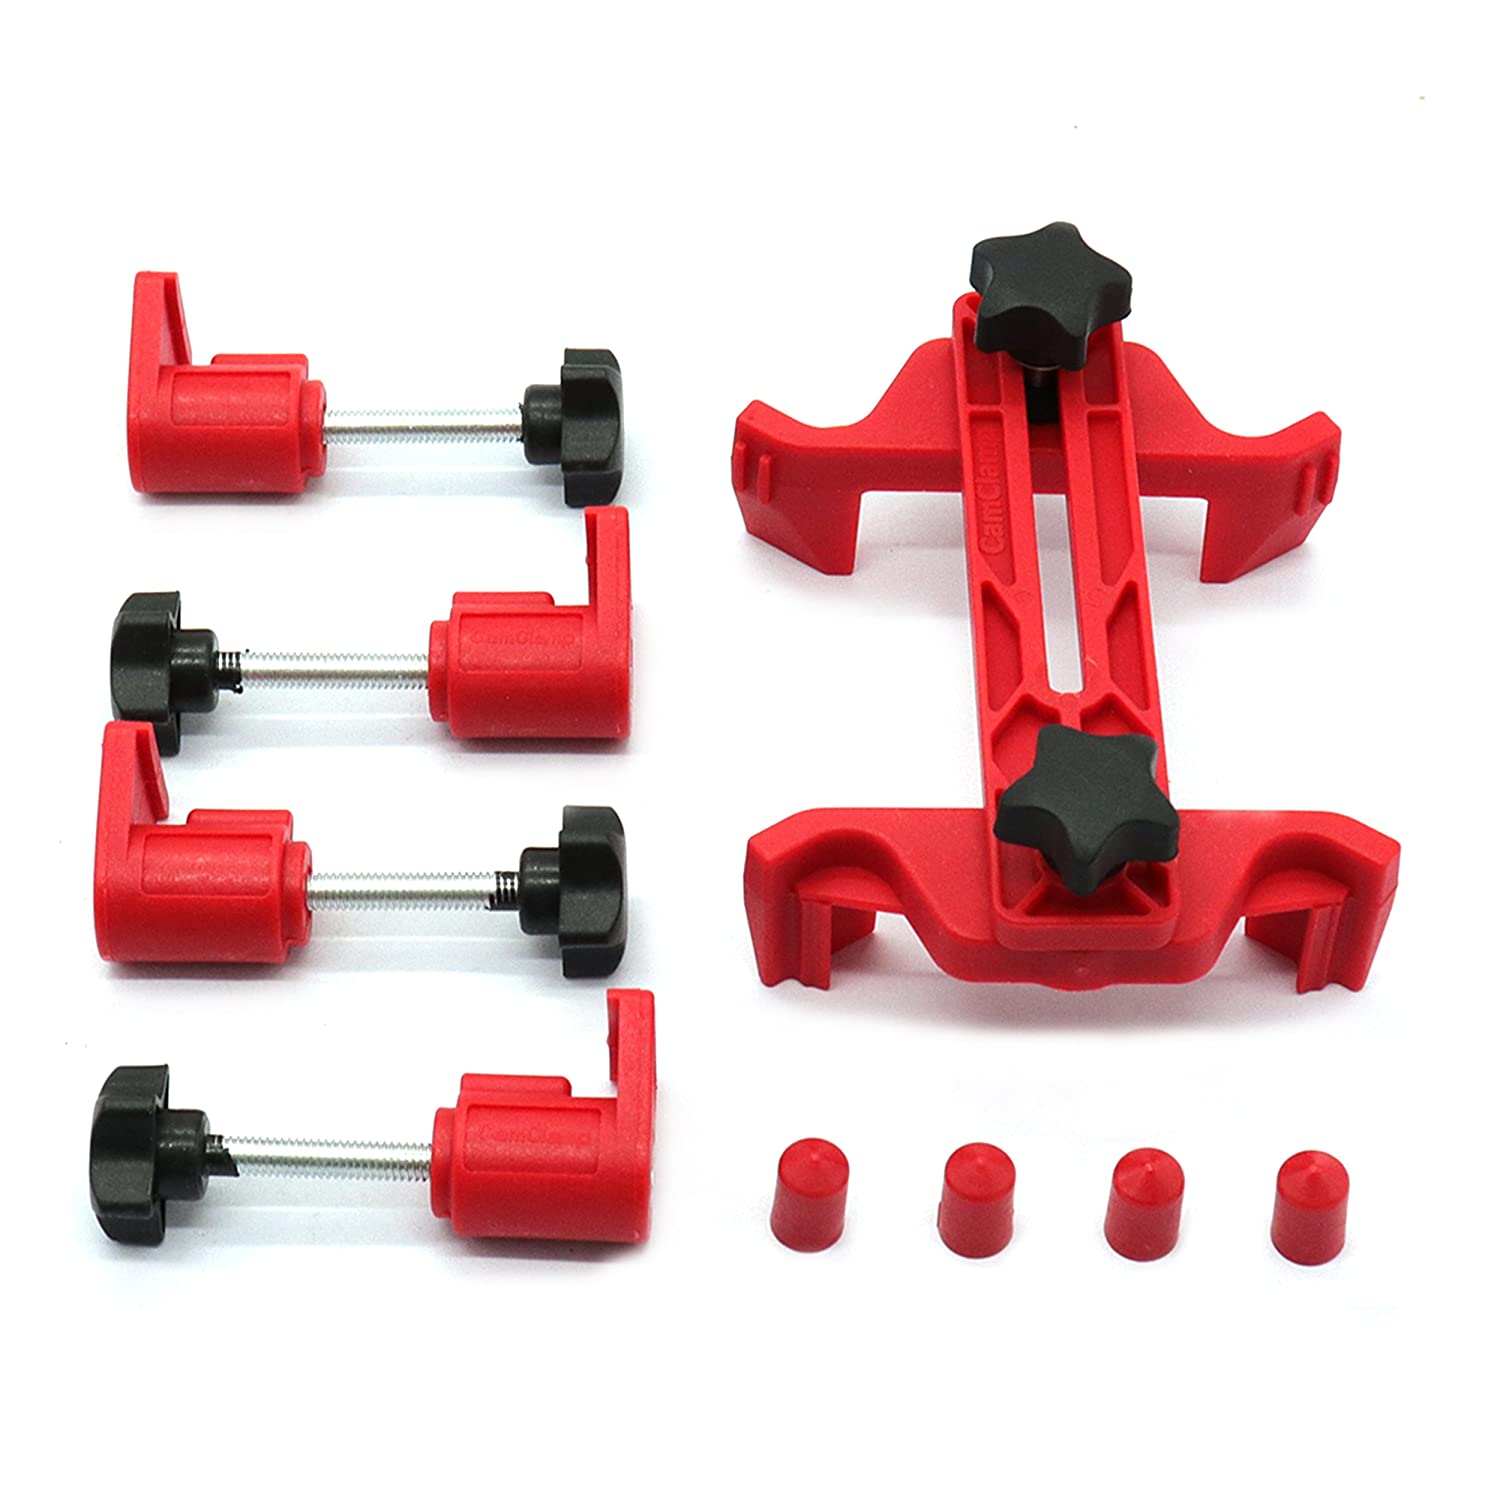 Timing Gear Clamp Set - Holds Valve Timing - Single, dual or quad overhead cam iztor